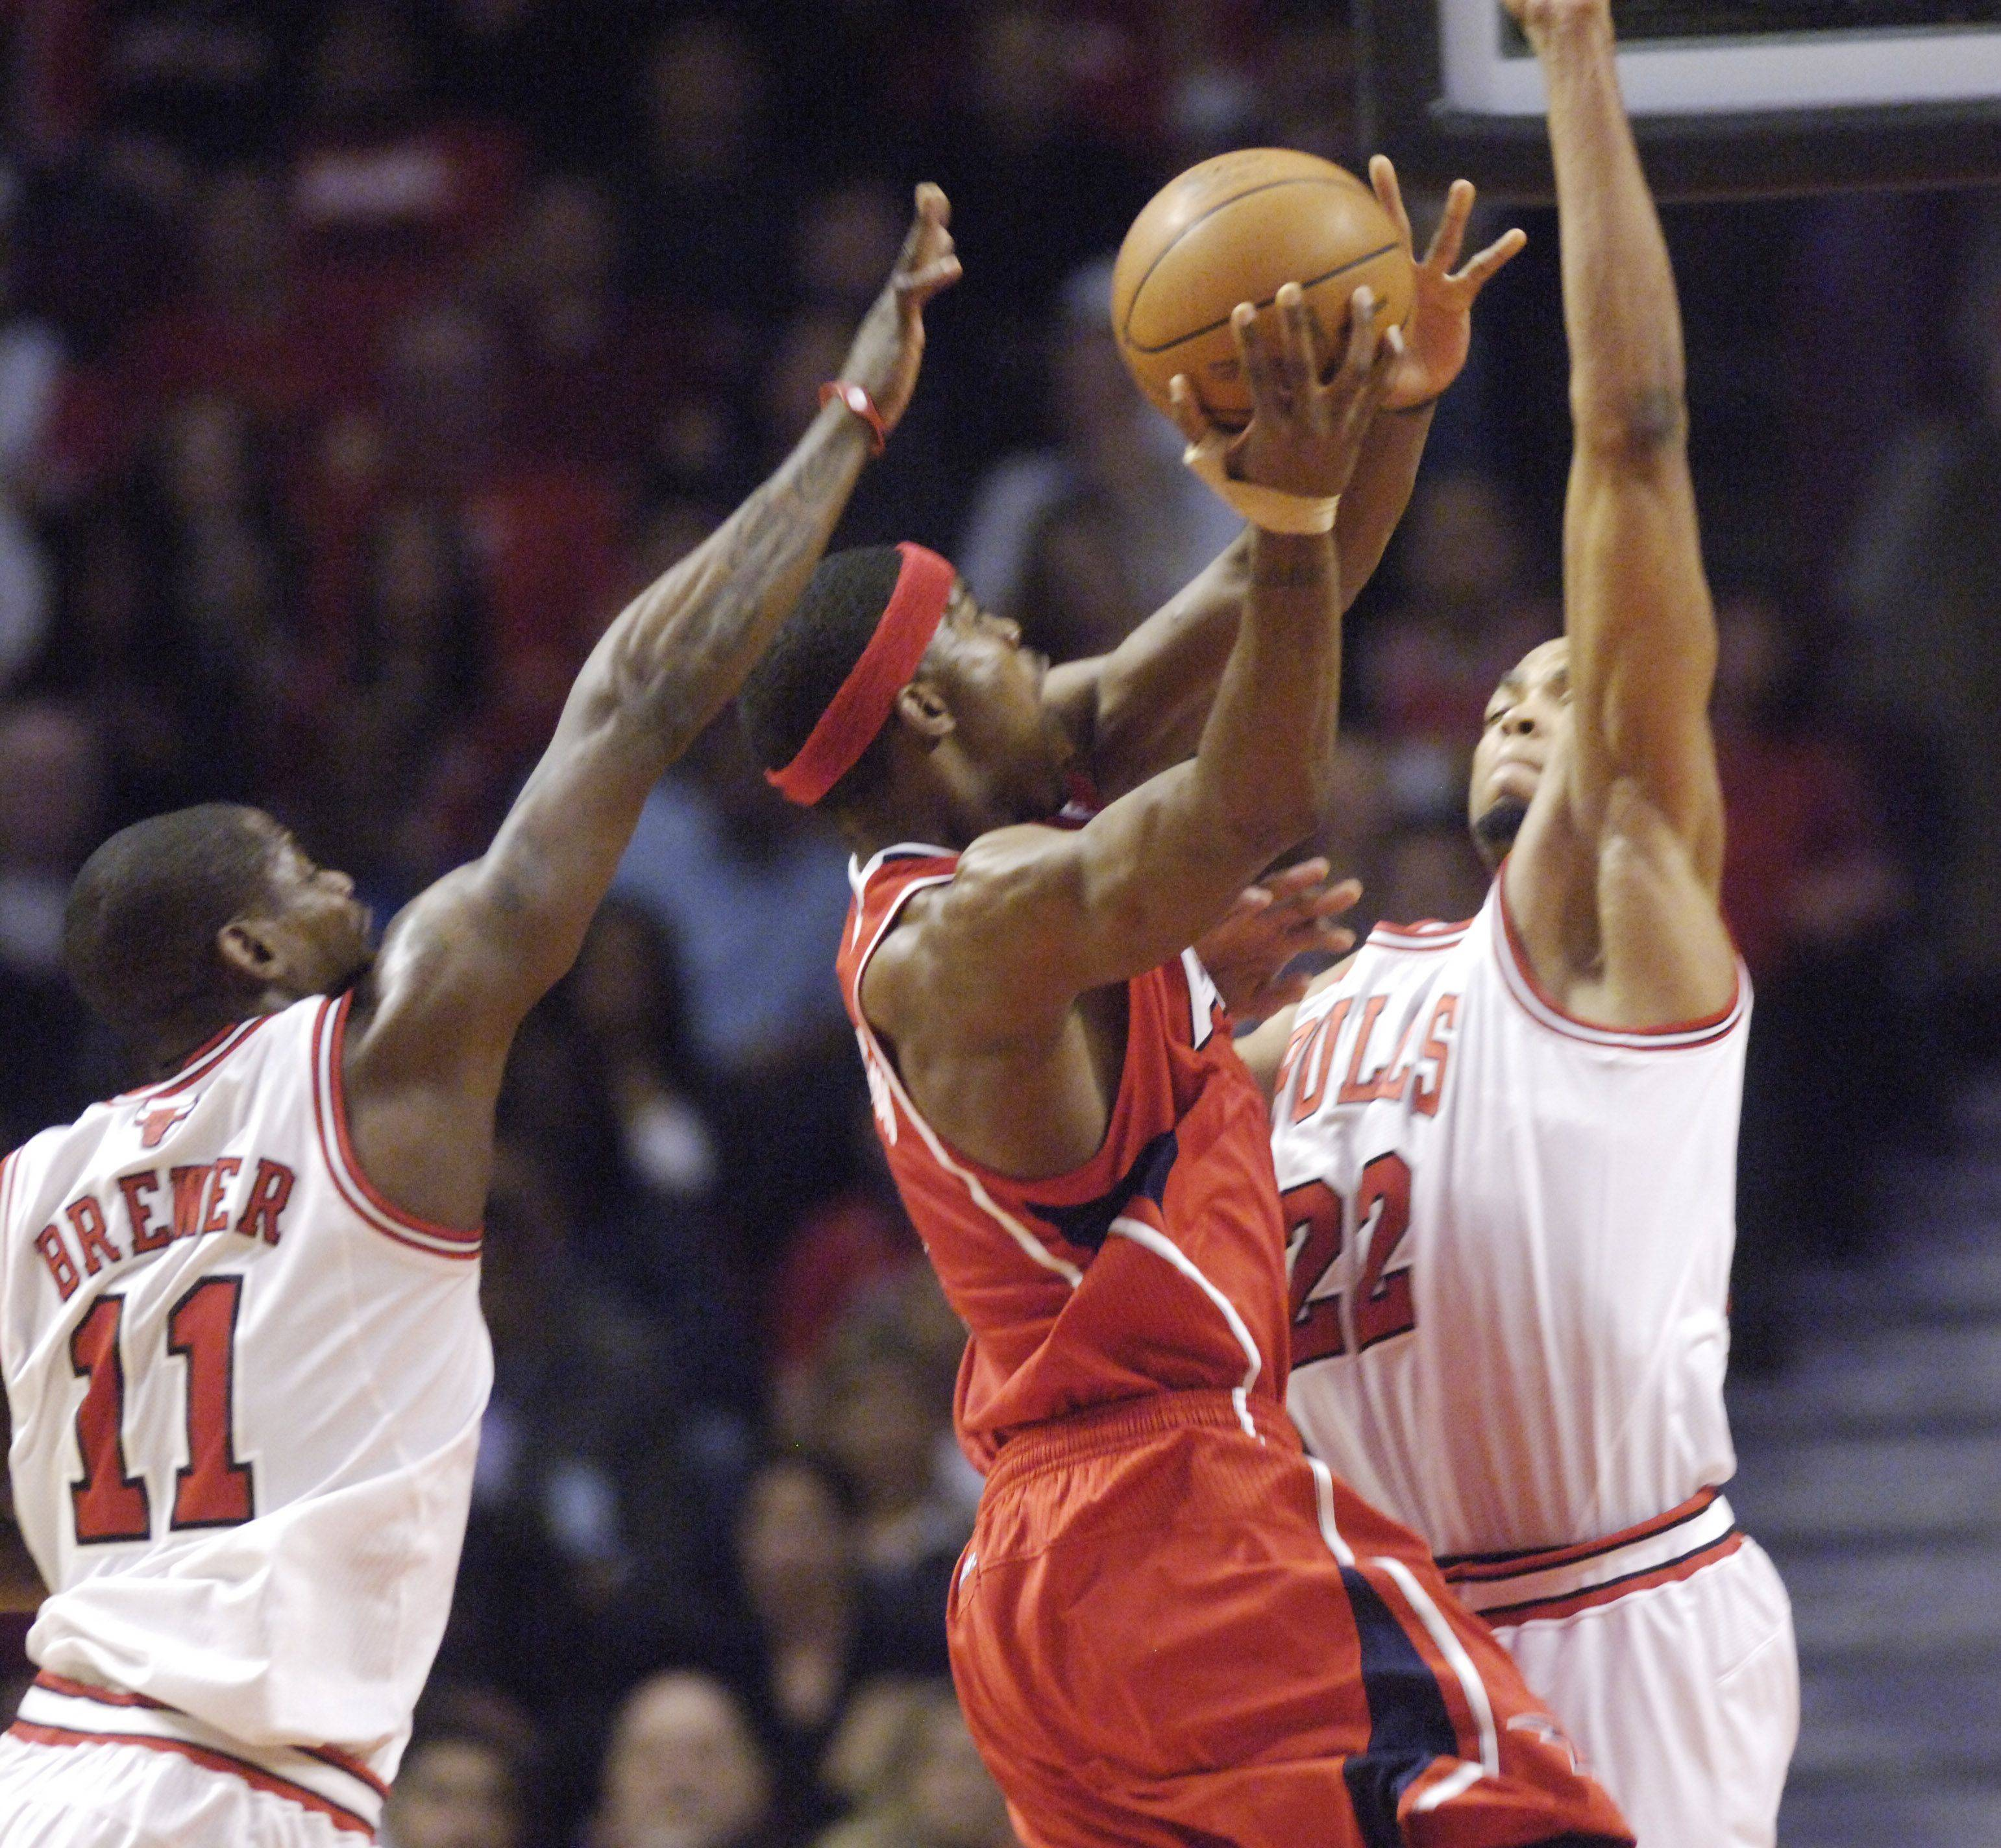 Joe Johnson of the Atlanta Hawks goes to the basket against Ronnie Brewer, left, and Taj Gibson of the Bulls during Monday's game at the United Center.